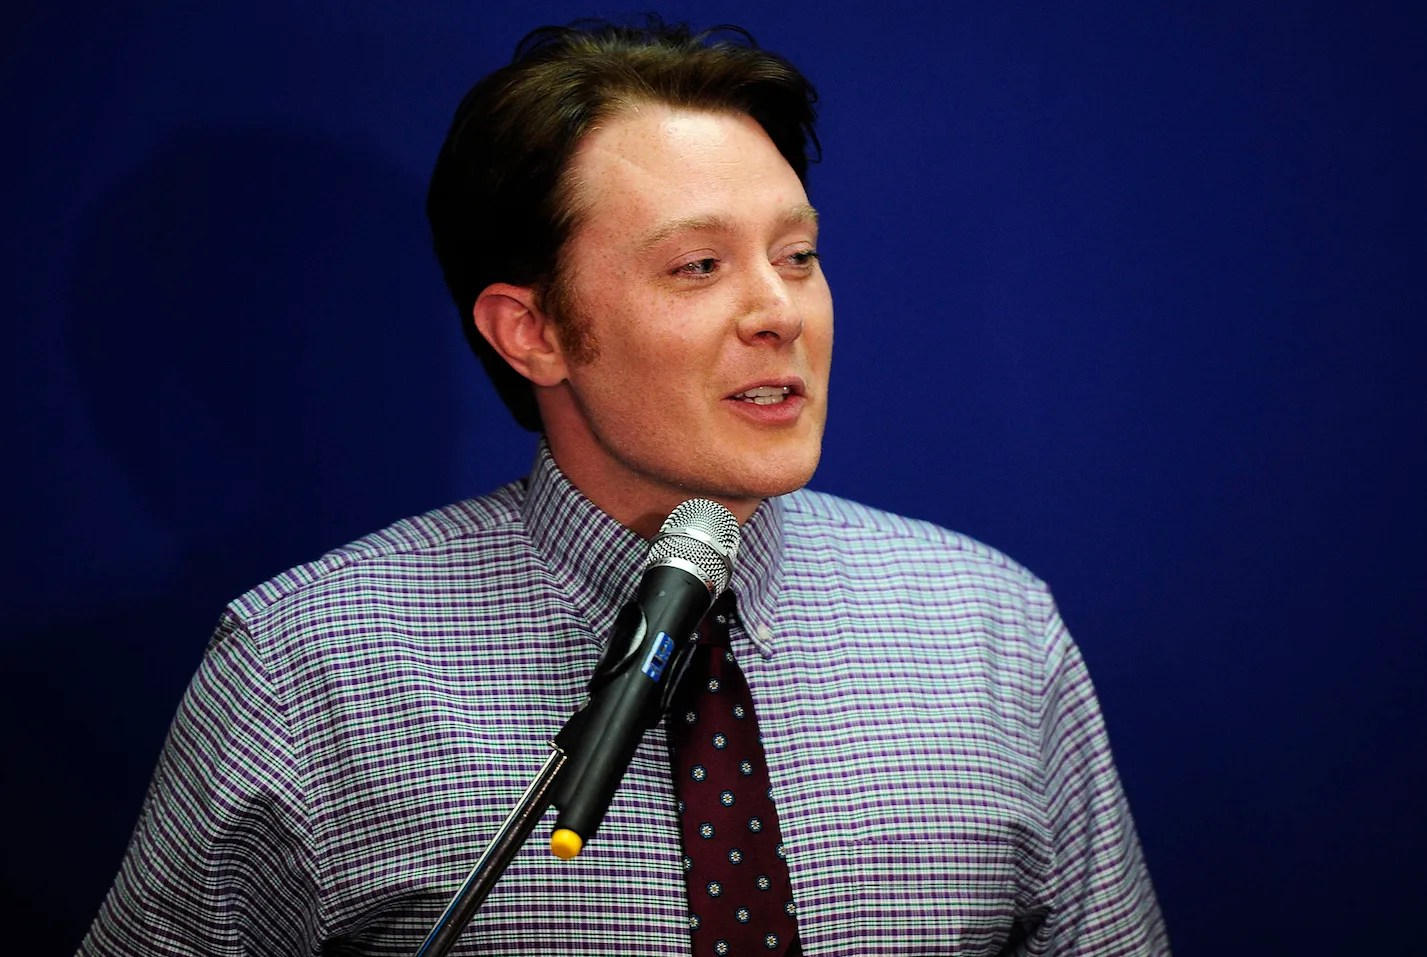 Clay Aiken Goes After American Idol Judges Says Root